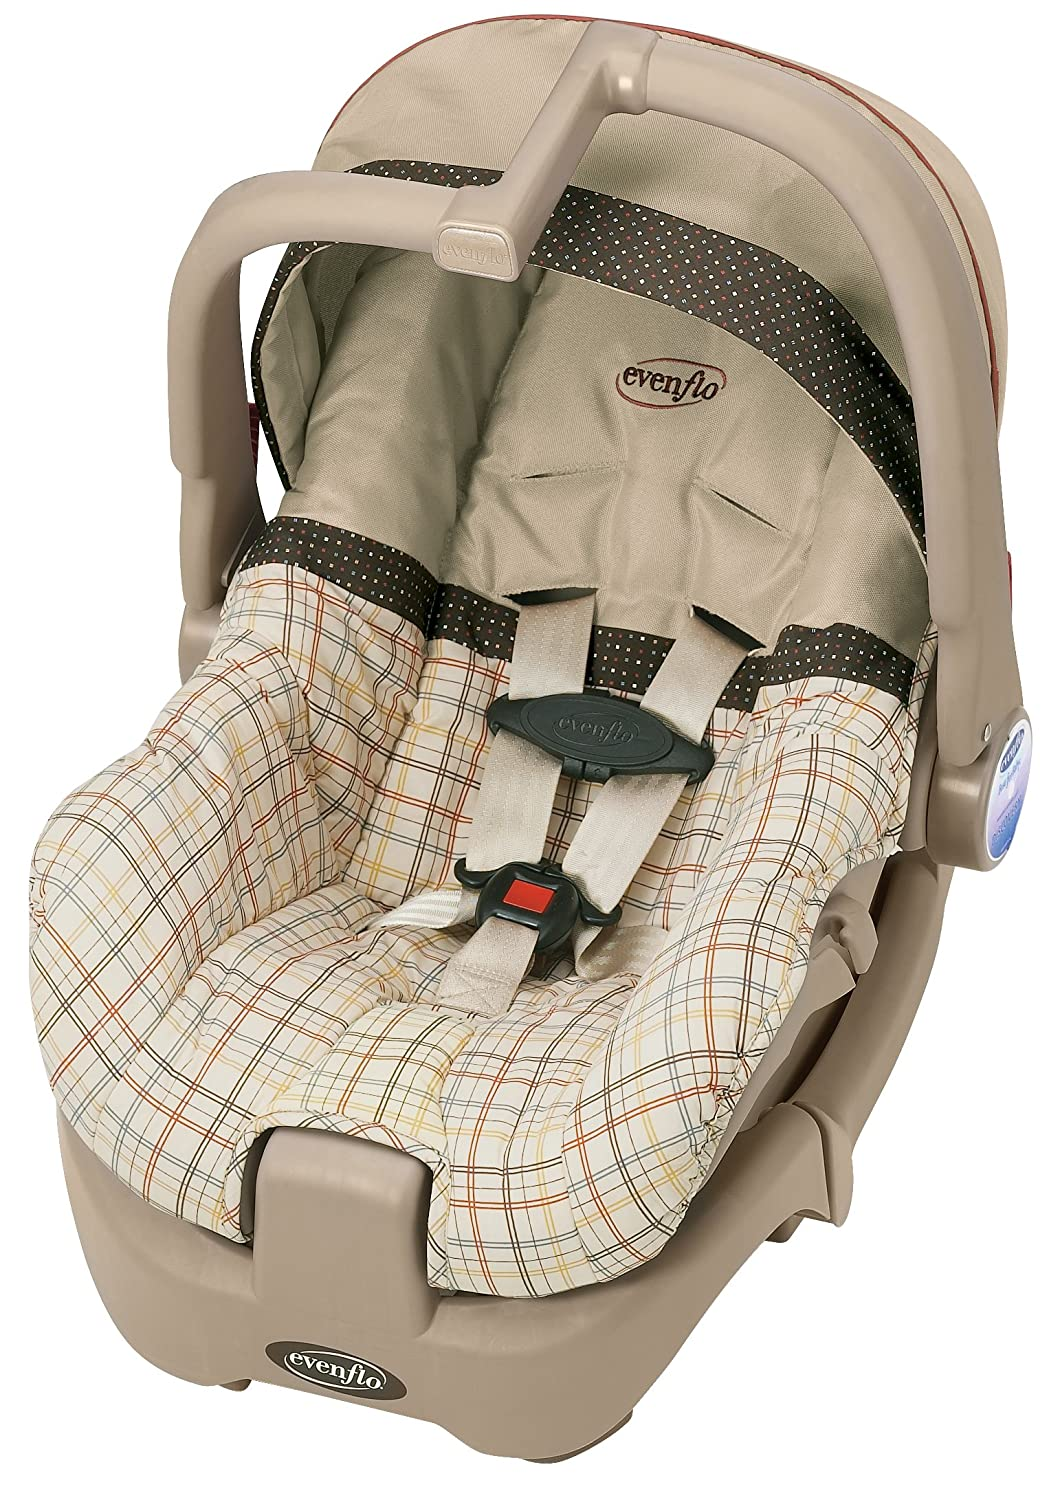 Evenflo Chase Dlx Booster Car Seat Instructions